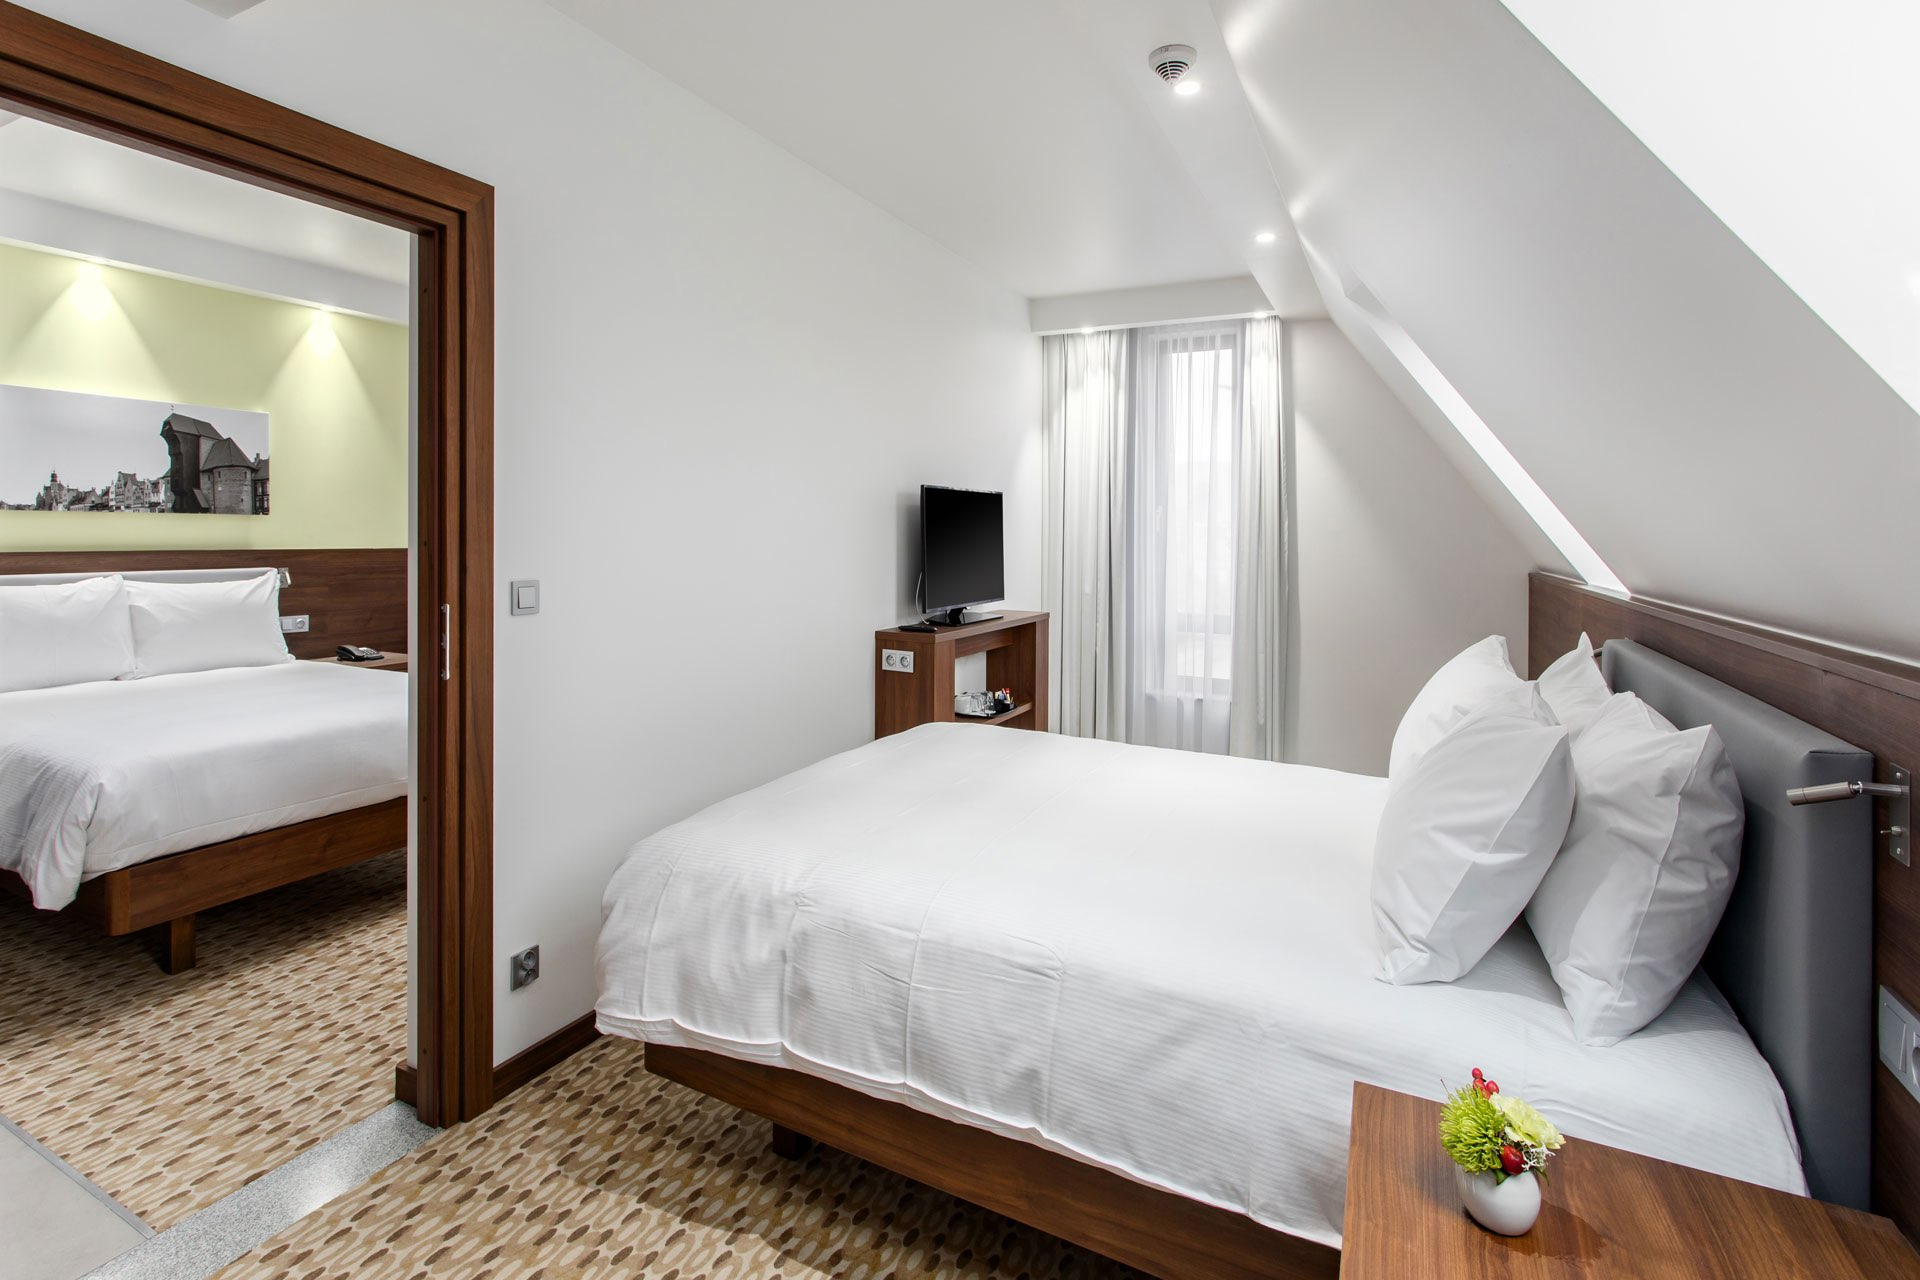 Hampton-by-Hilton-Gdansk-2-Beds-Queen-Family-Room-2